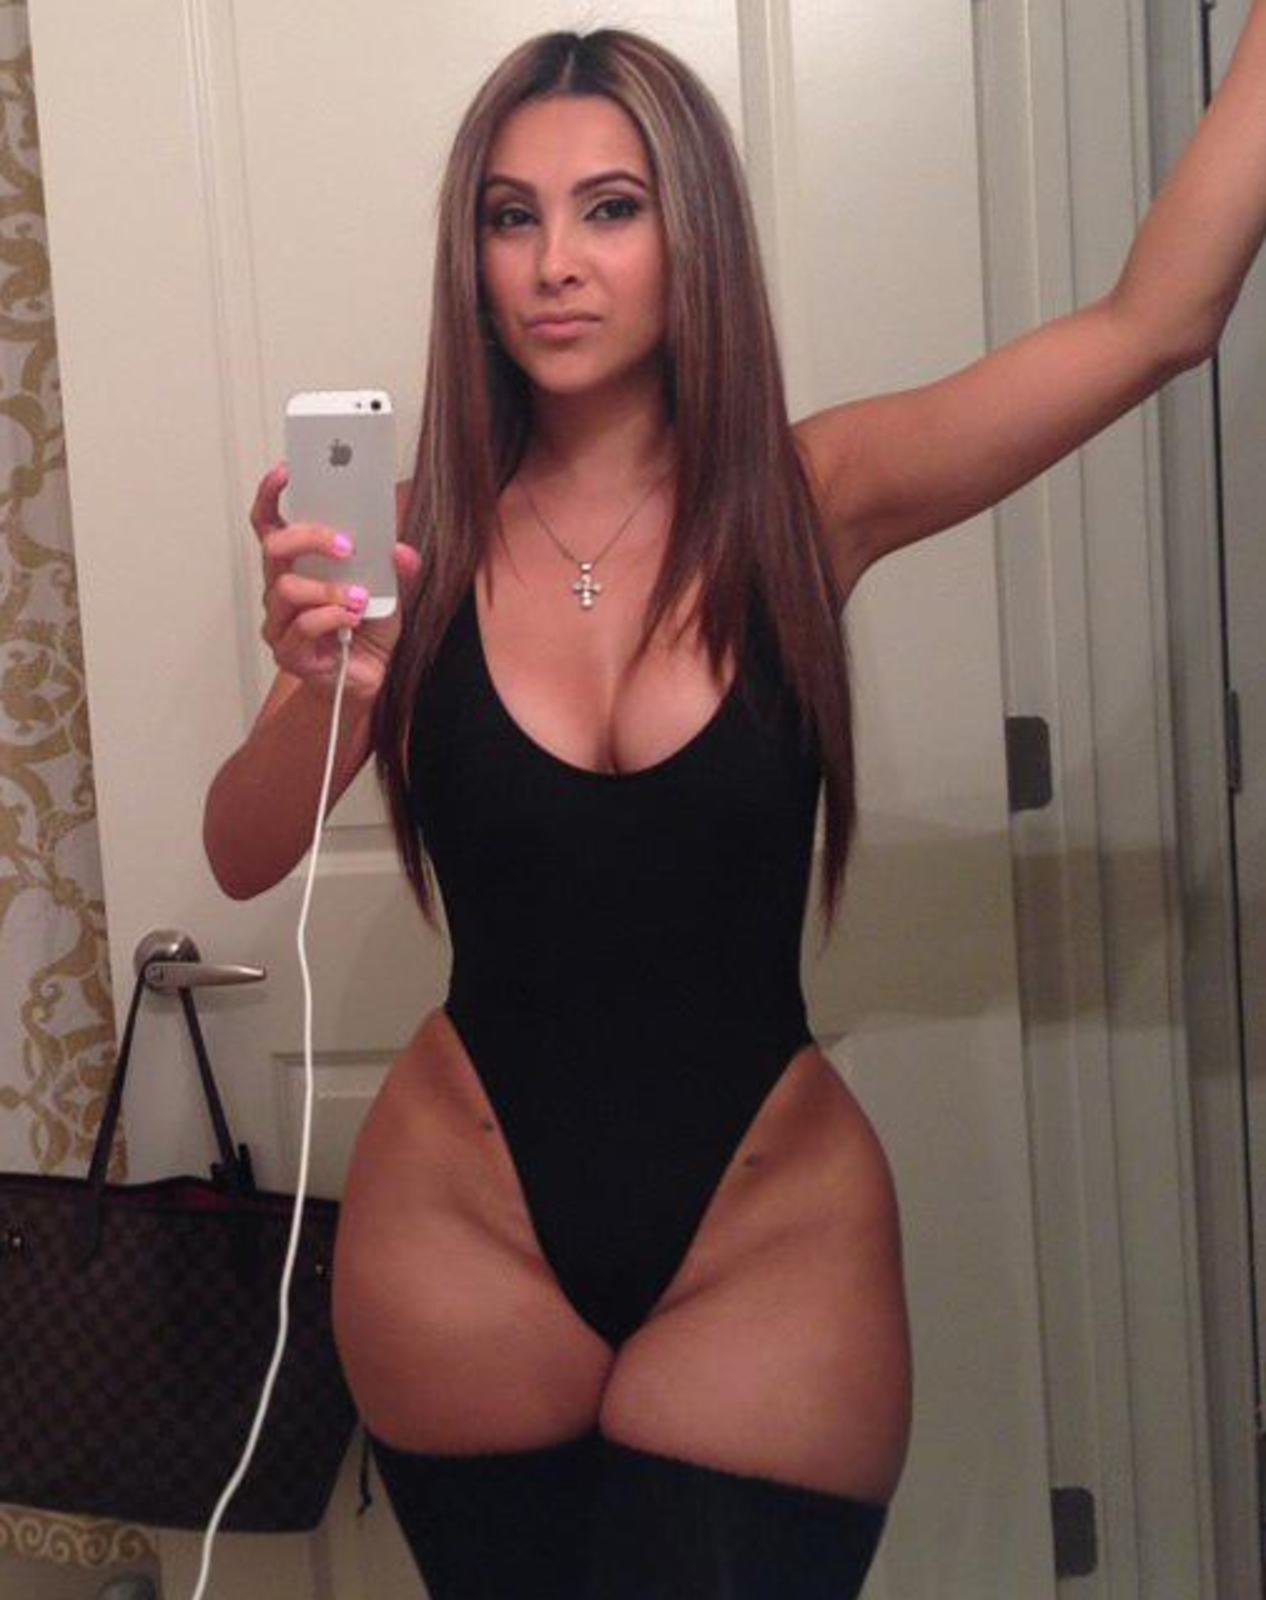 download video long porn naked celebs caught Jessicaburke Leggings Spandex Yogapants Bigass Slut Tights Bigbooty Sexy Pawg Public Thick ThickWhiteGirl Whooty Hot Ass